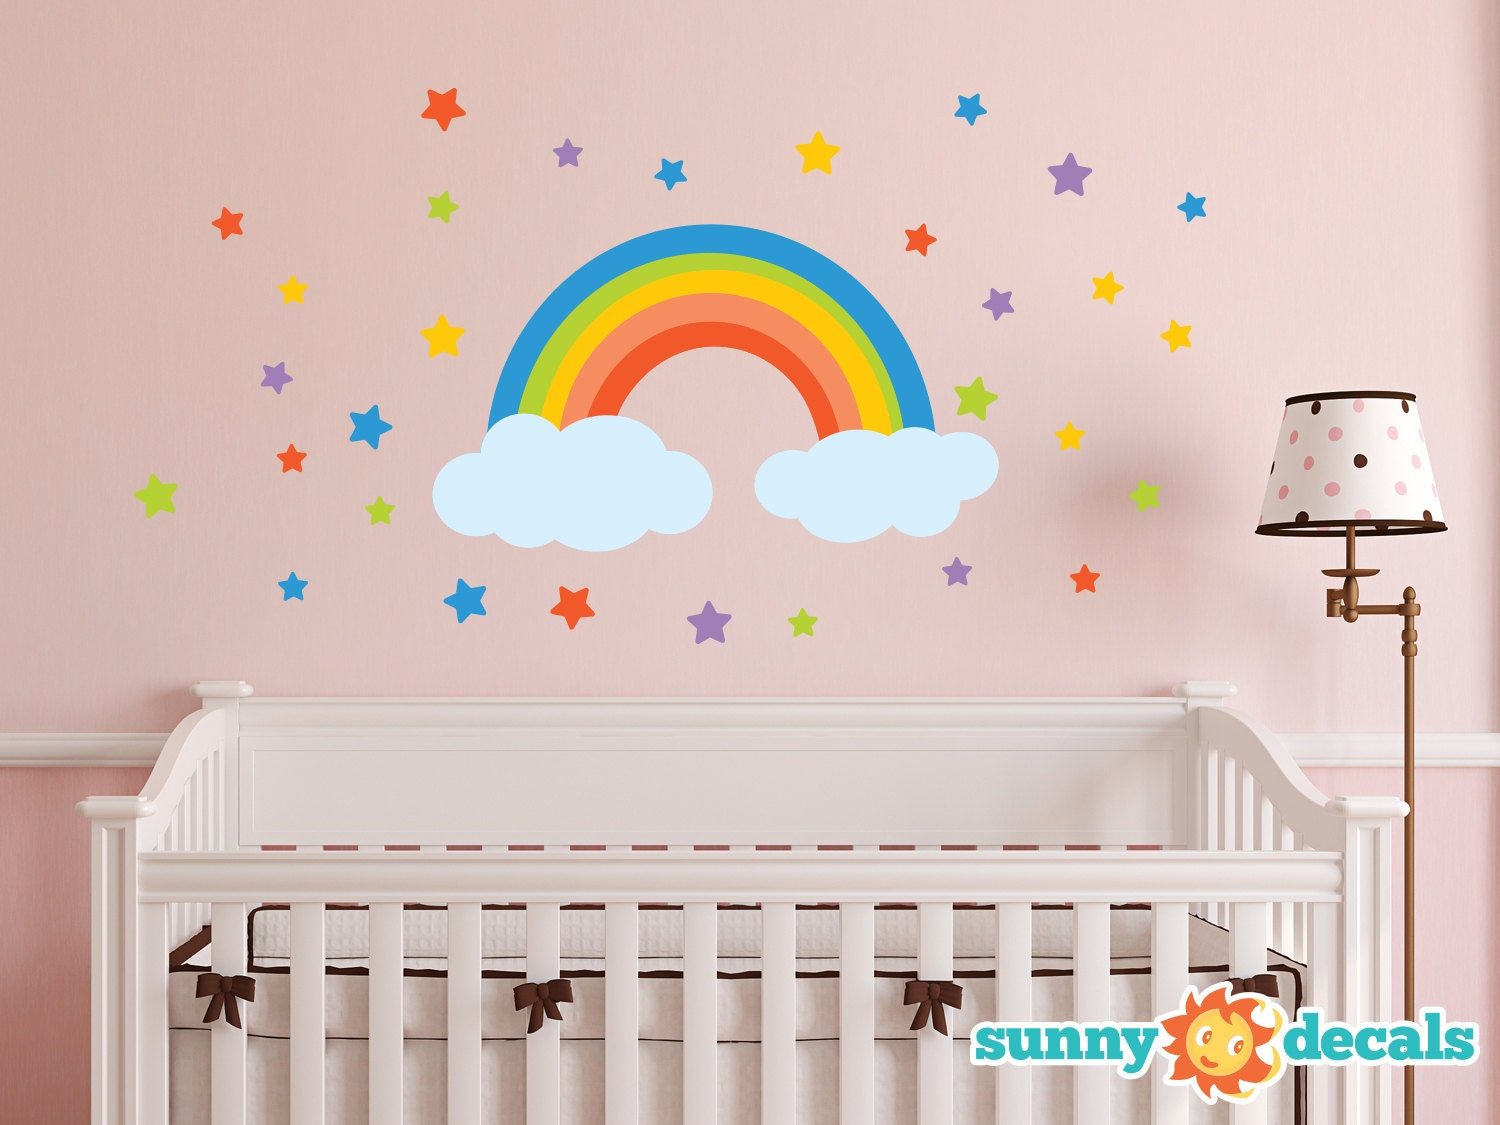 Rainbow Fabric Wall Decal Rainbow Wall Sticker With Stars And